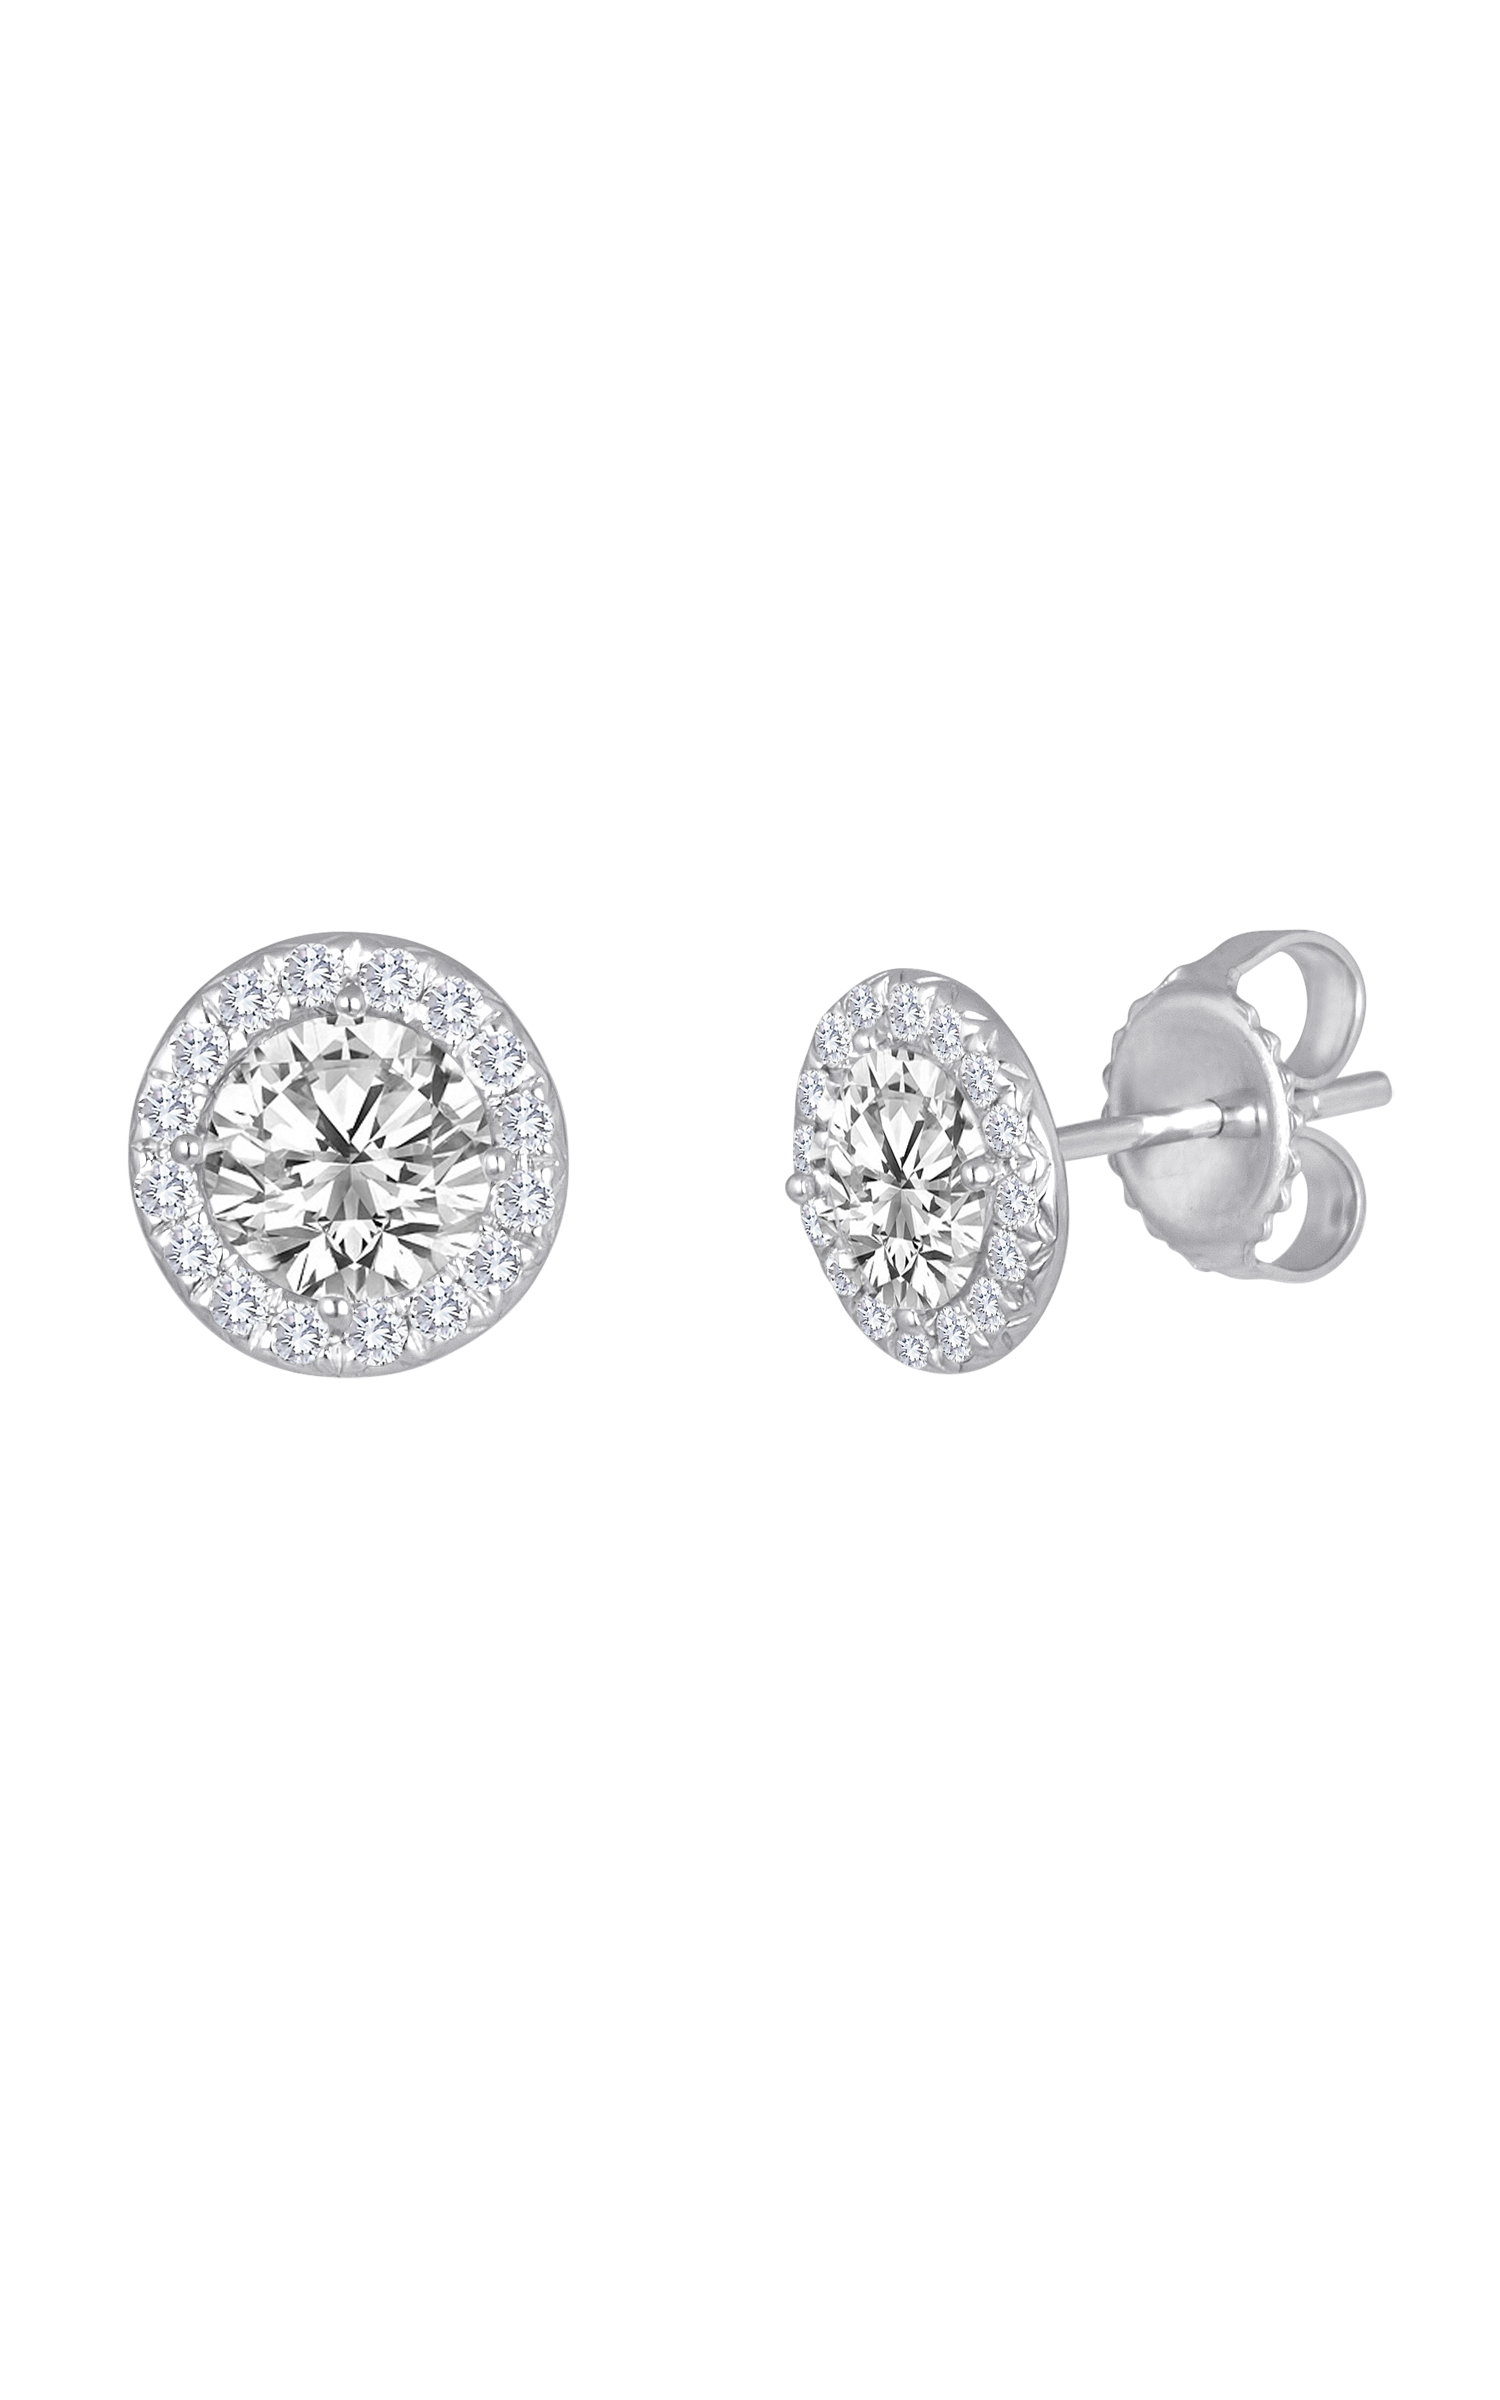 Beny Sofer Earrings Earring SE12-146-1B product image